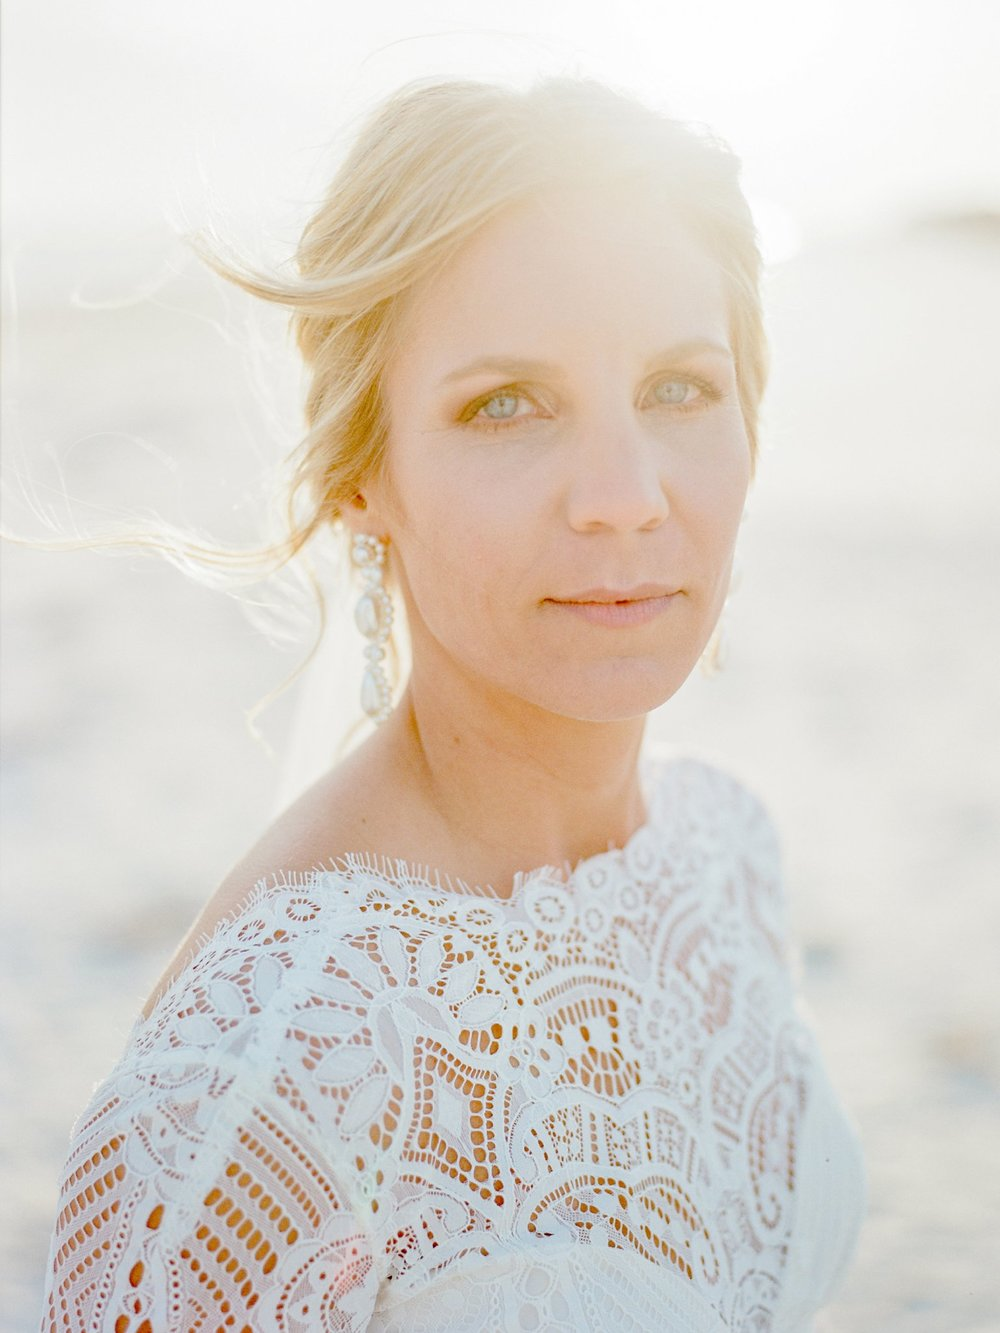 st george island wedding st george island photographer shannon griffin photography_0071.jpg